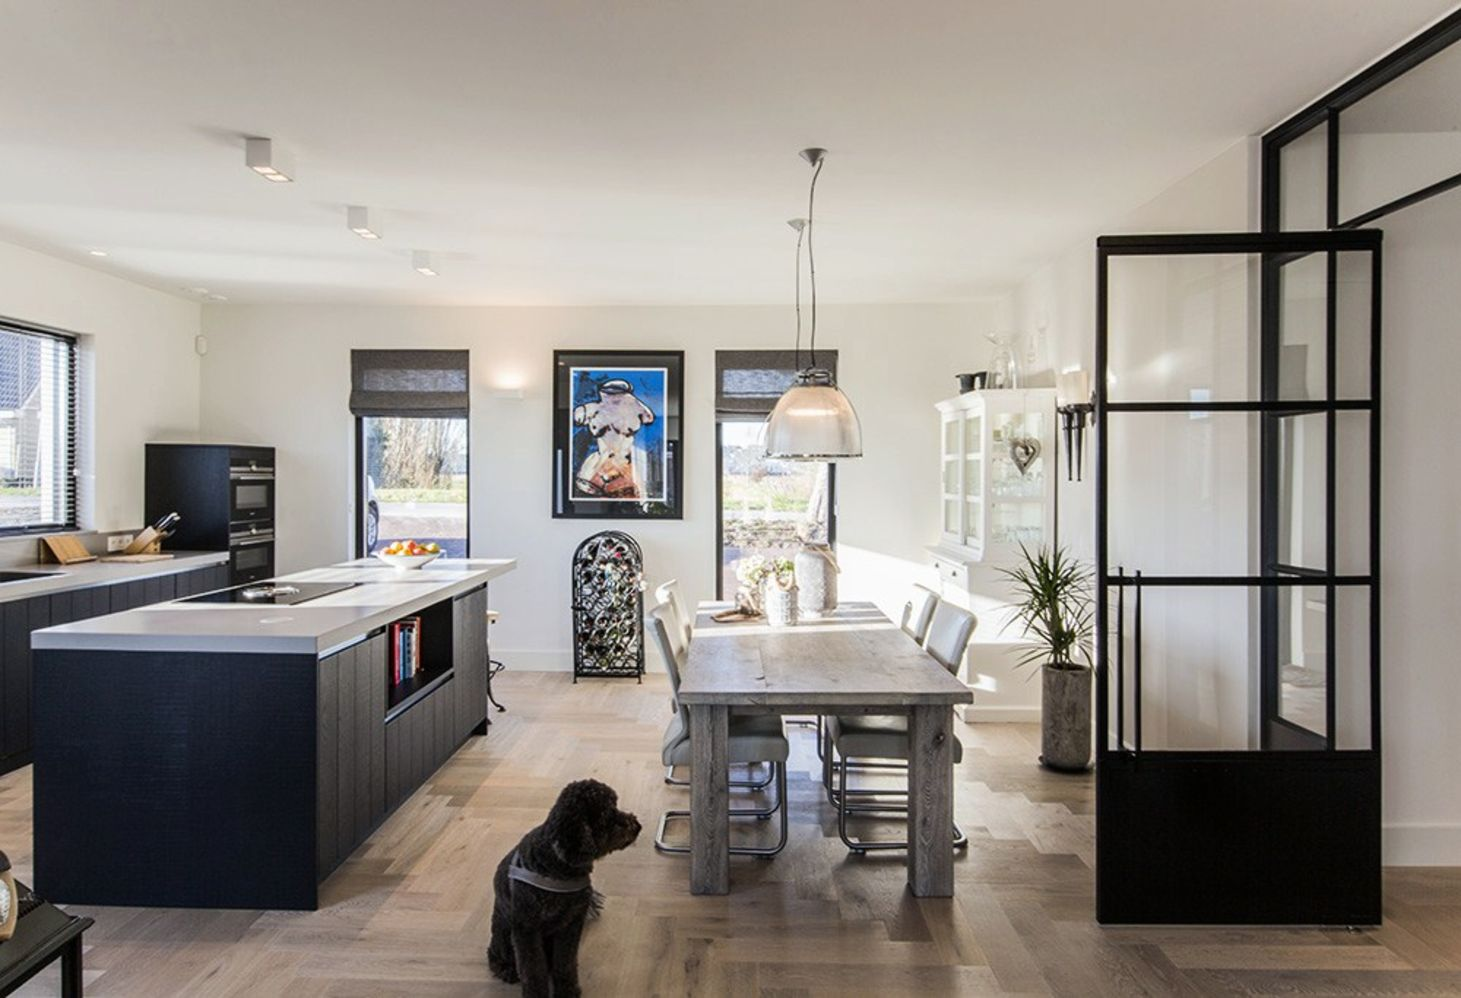 Black white barn house design showing open interior concept with seamless modern home characteristics Out Of The Box (4)